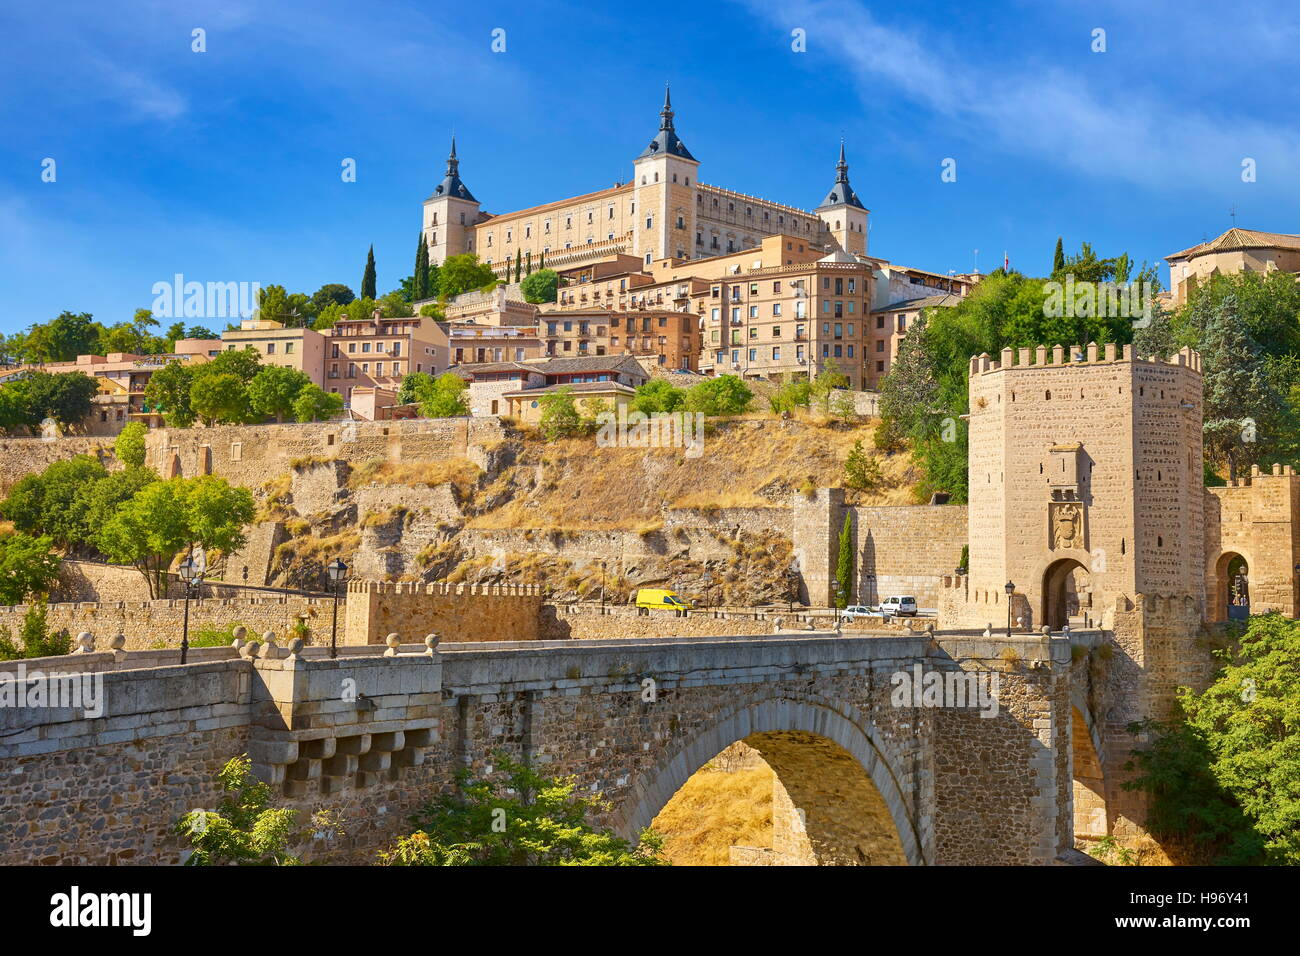 Toledo old town, San Martin Bridge, Spain - Stock Image